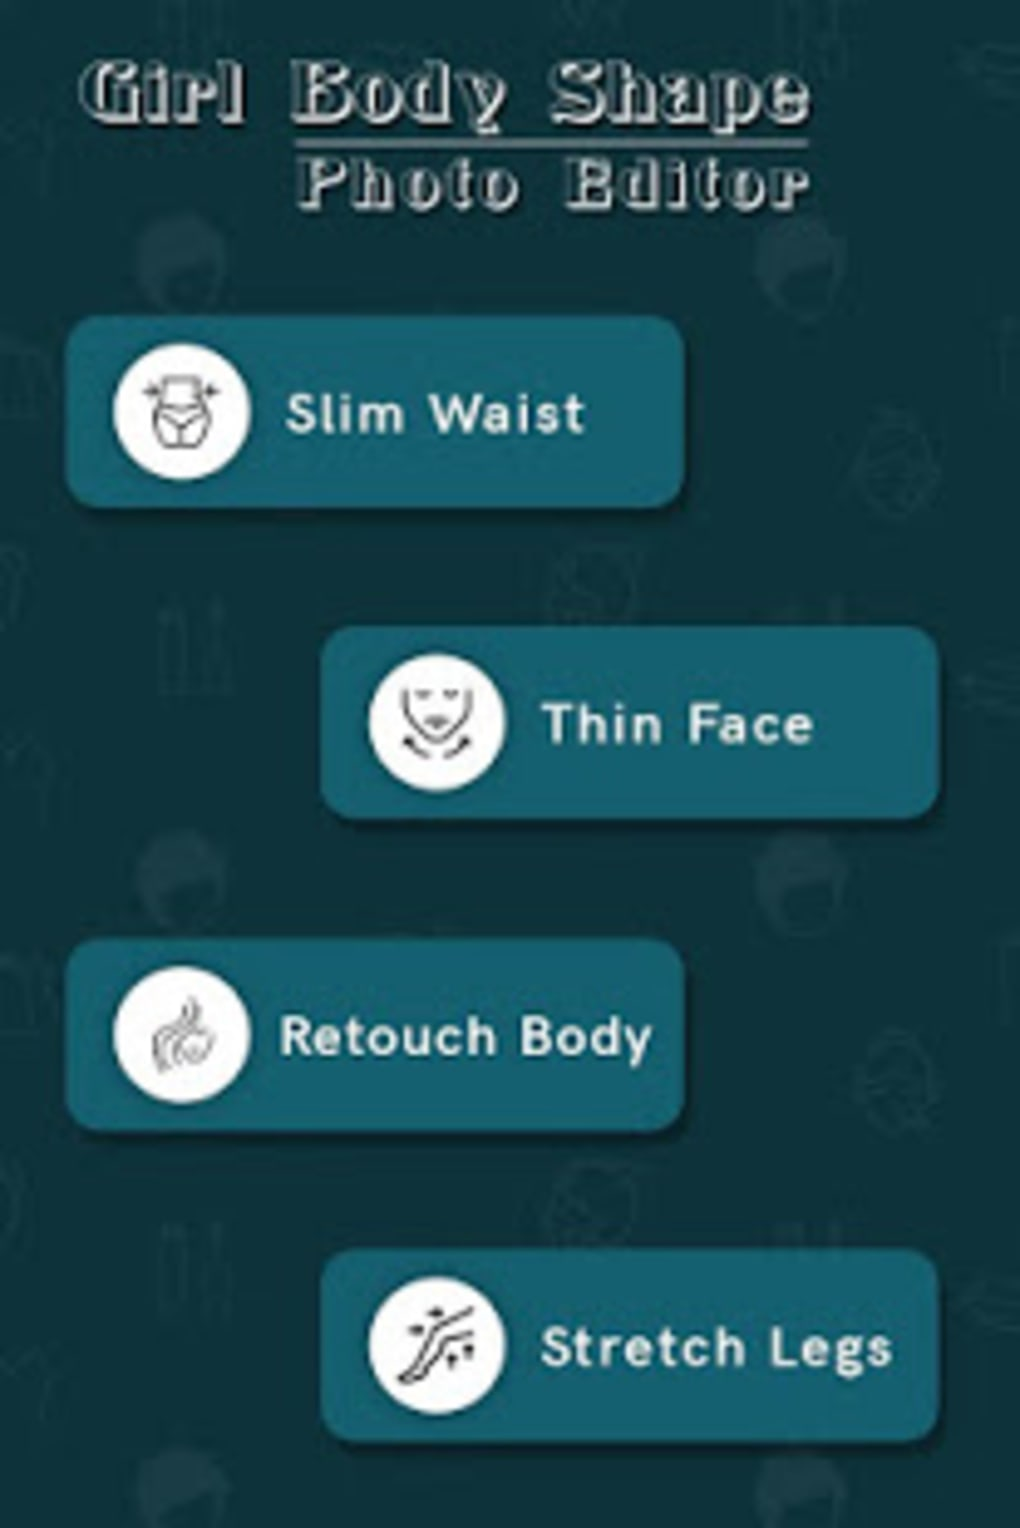 Girl Body Shape Editor - Body Editor for Android - Download